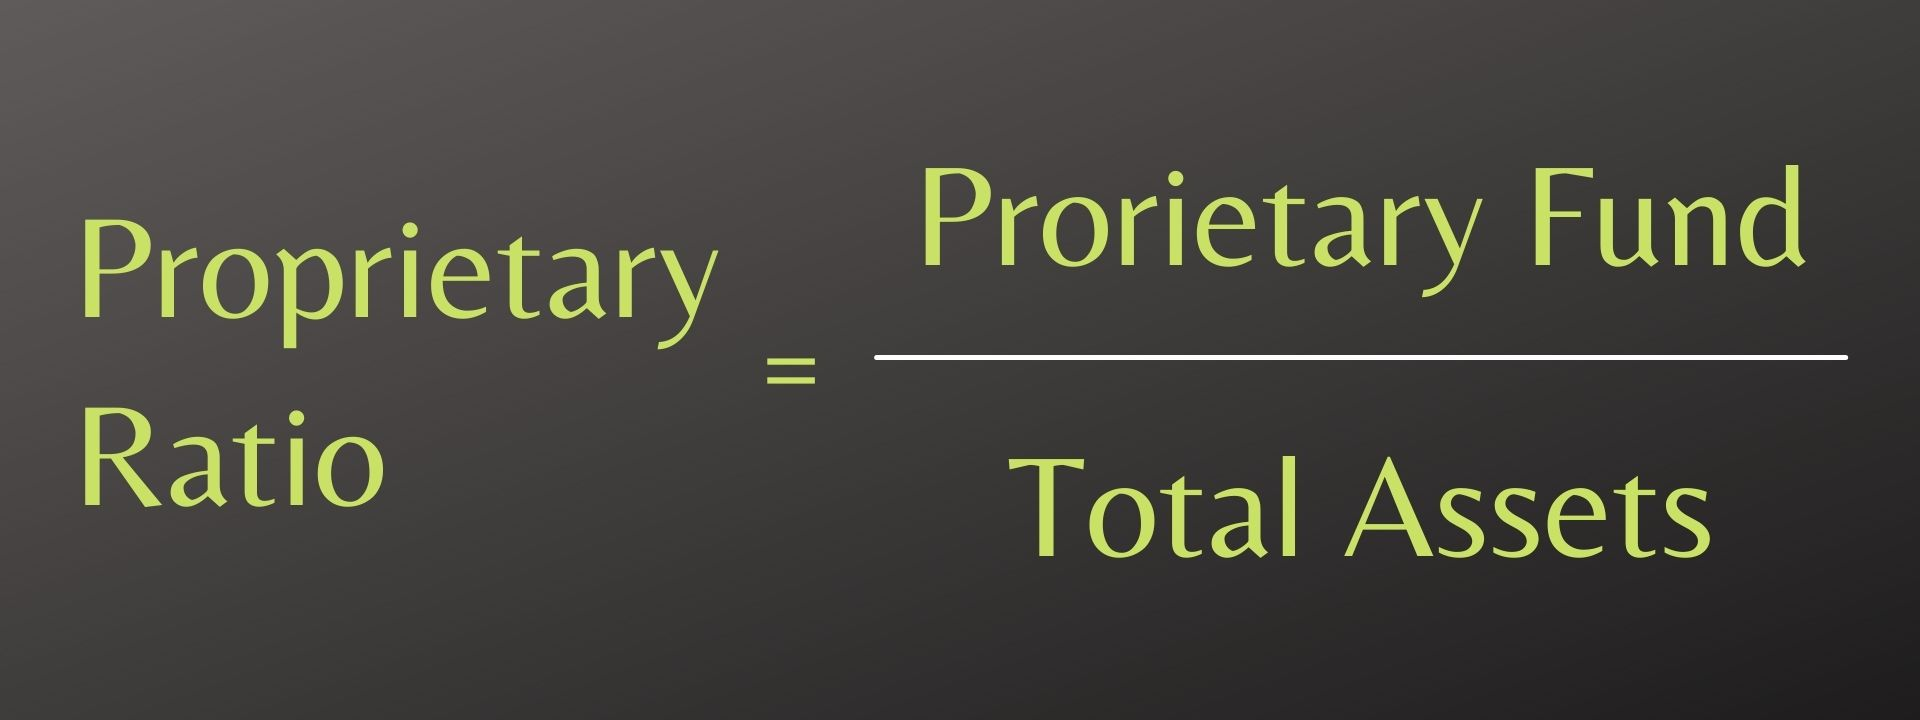 Proprietary Ratio